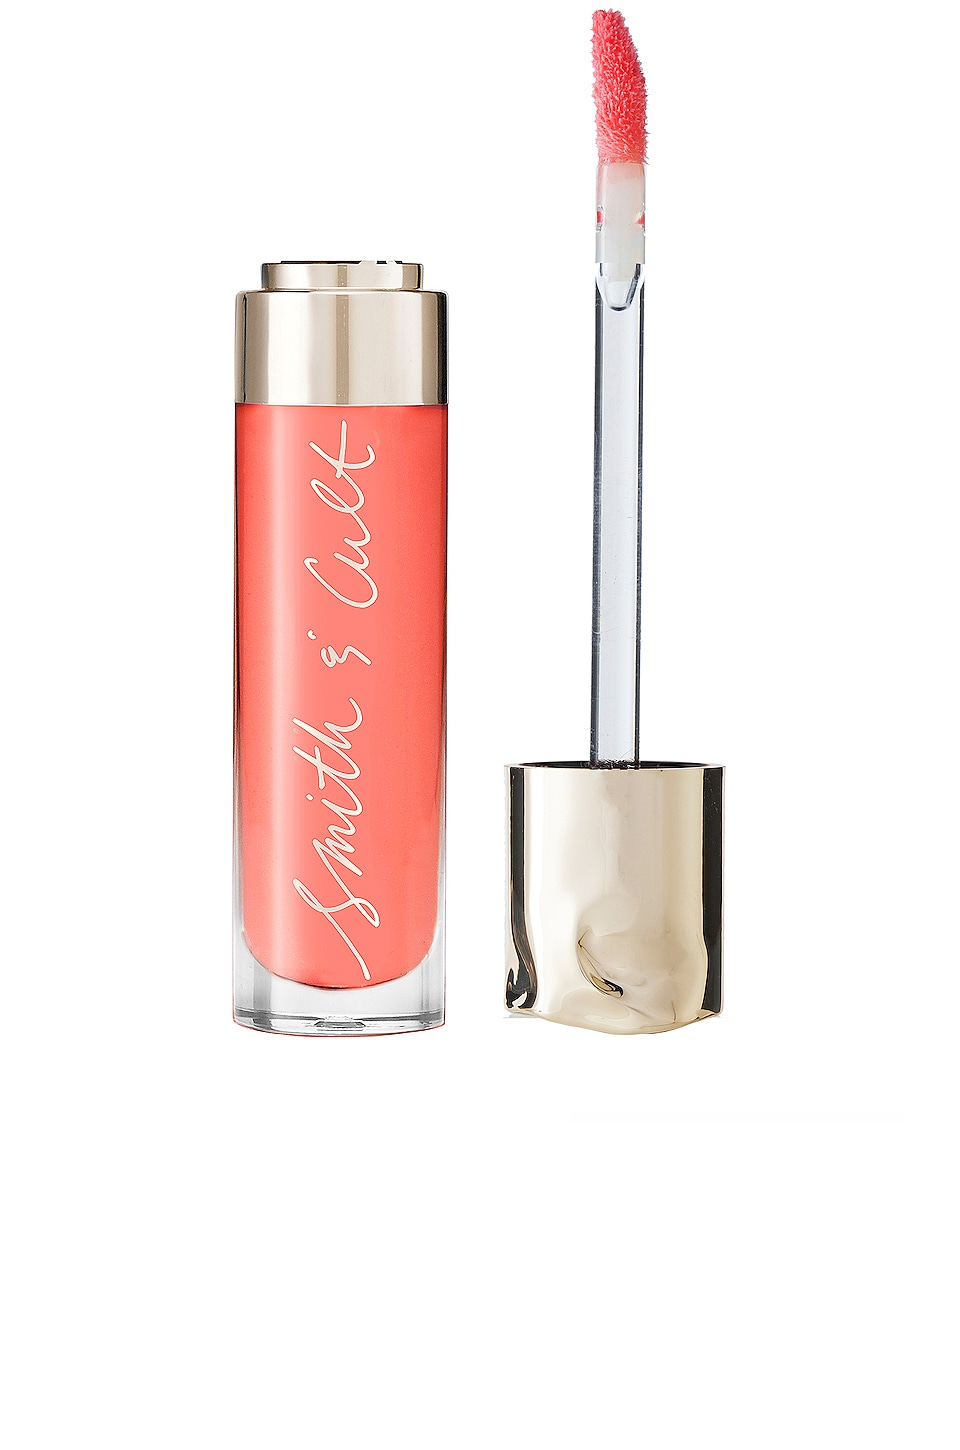 Smith & Cult Lip Lacquer in Her Name Bubbles